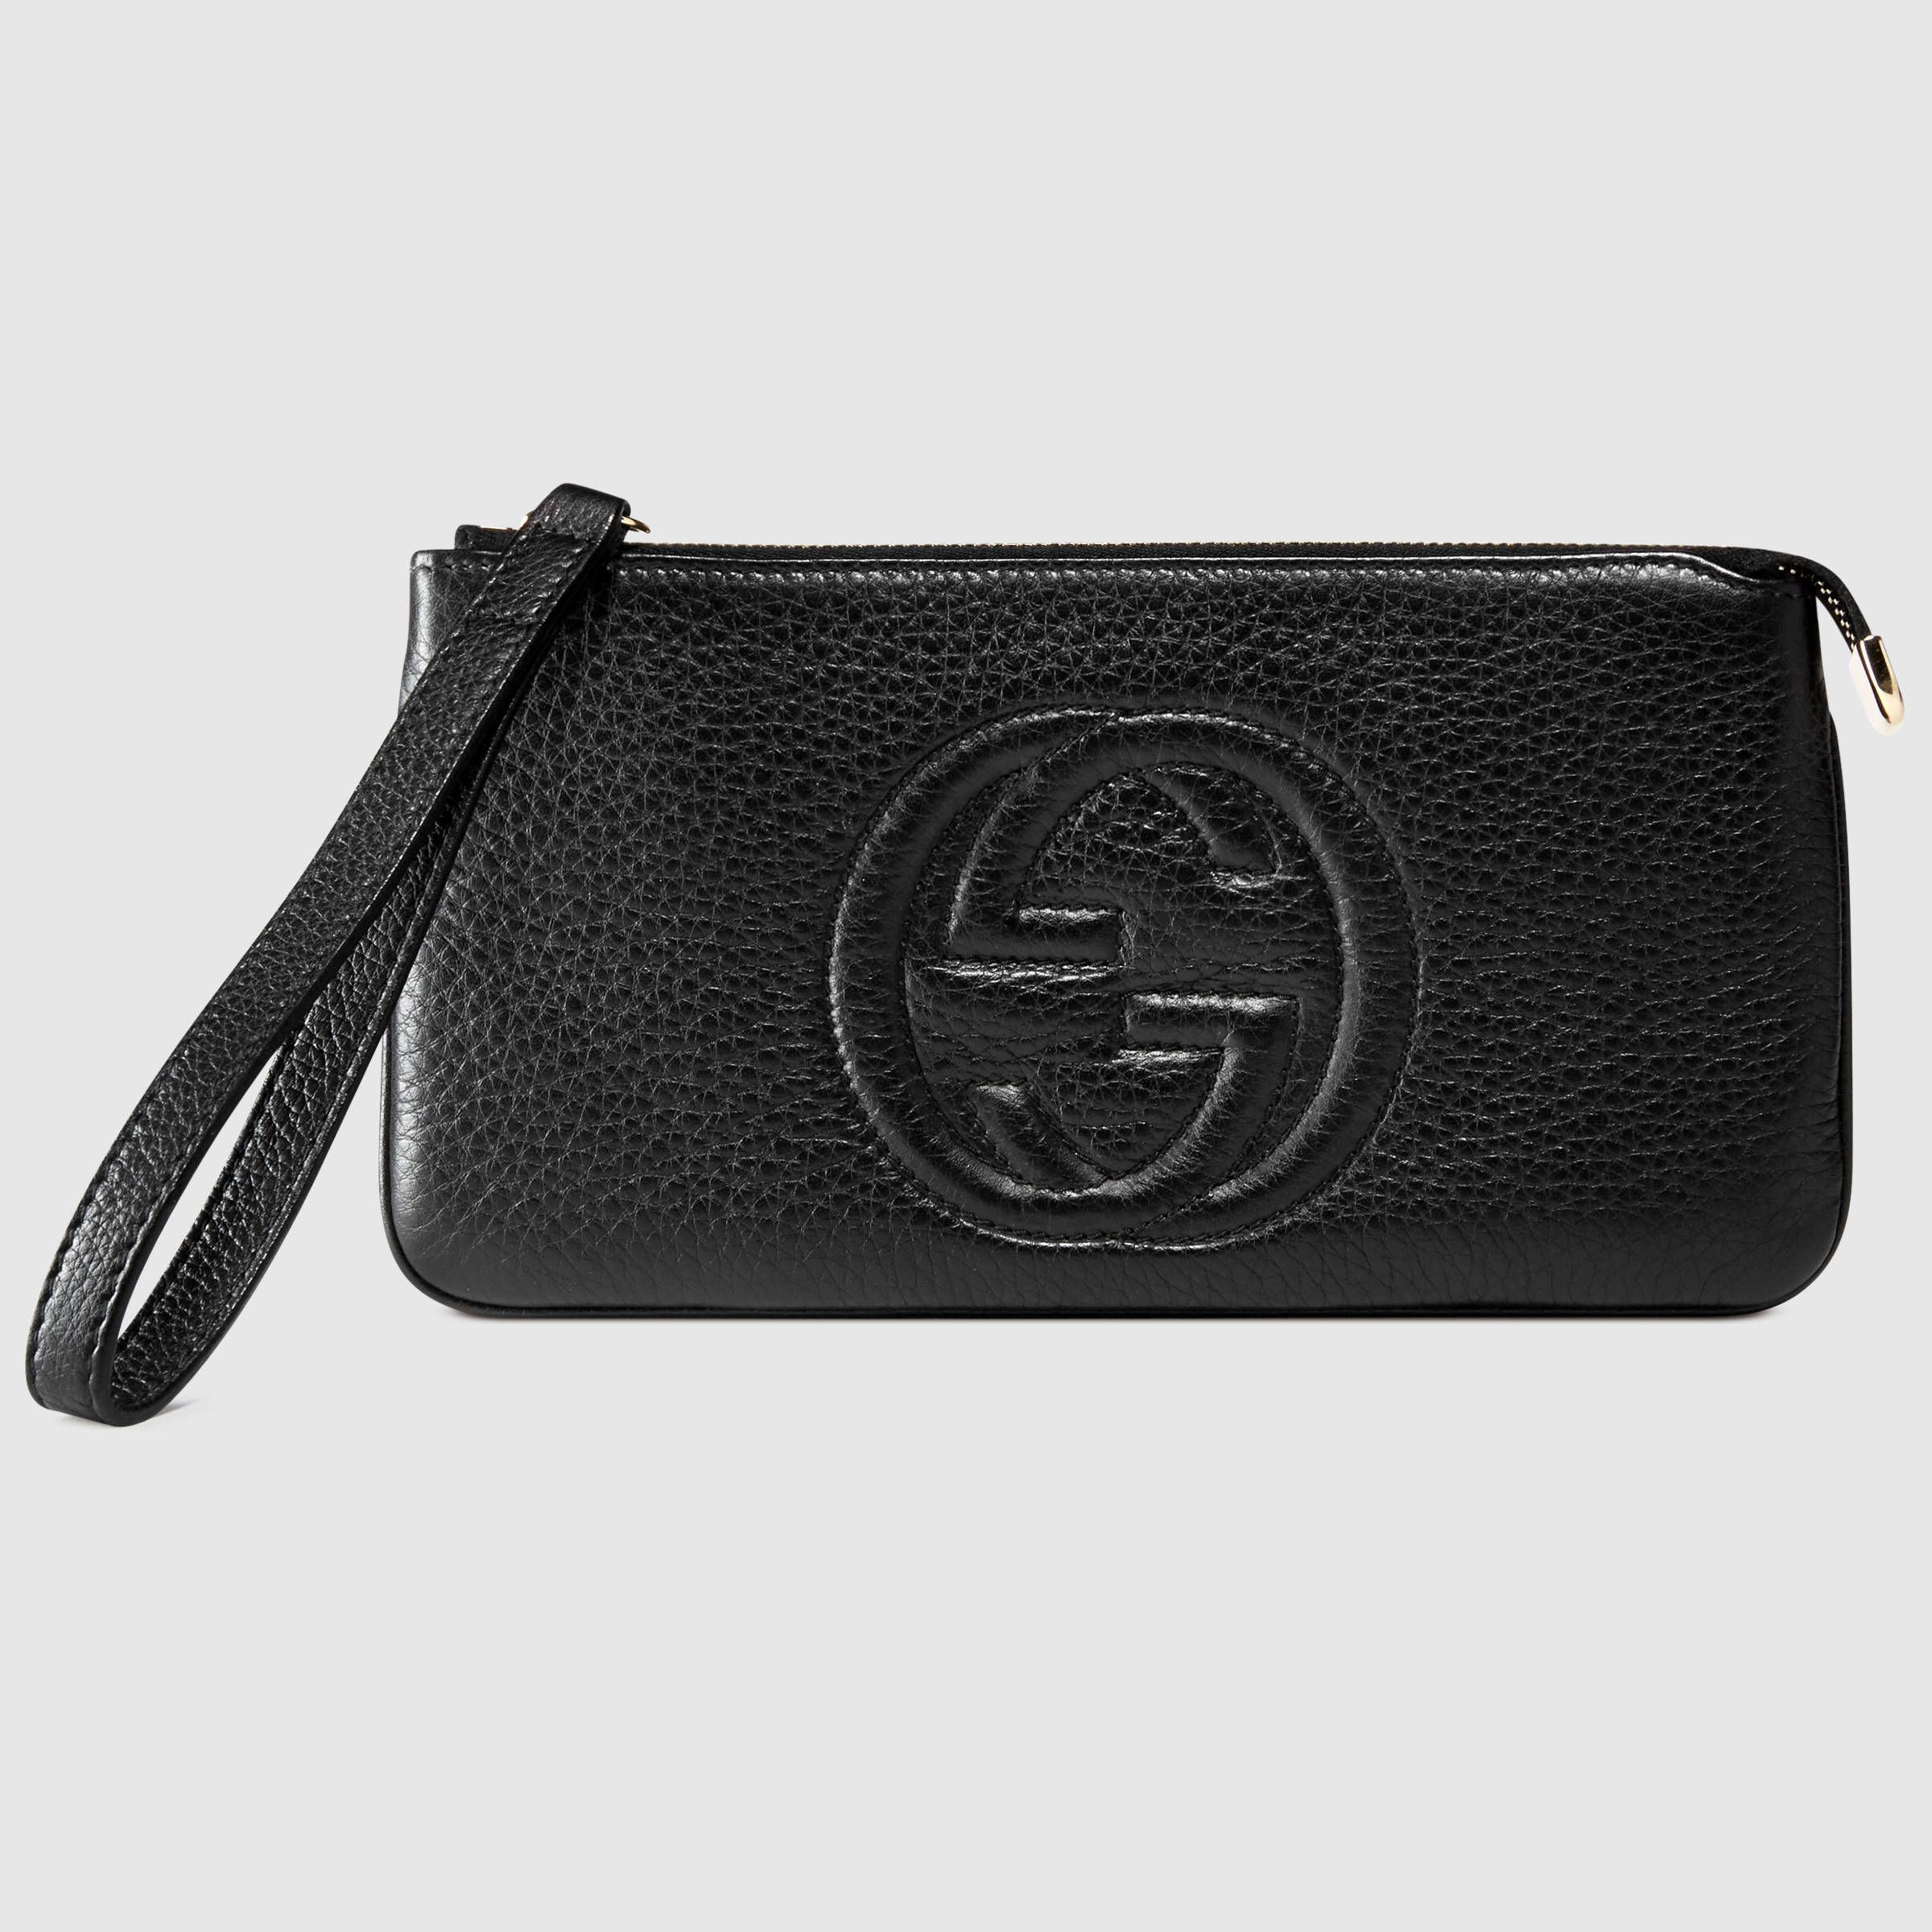 Gucci Official Site – Redefining modern luxury fashion.